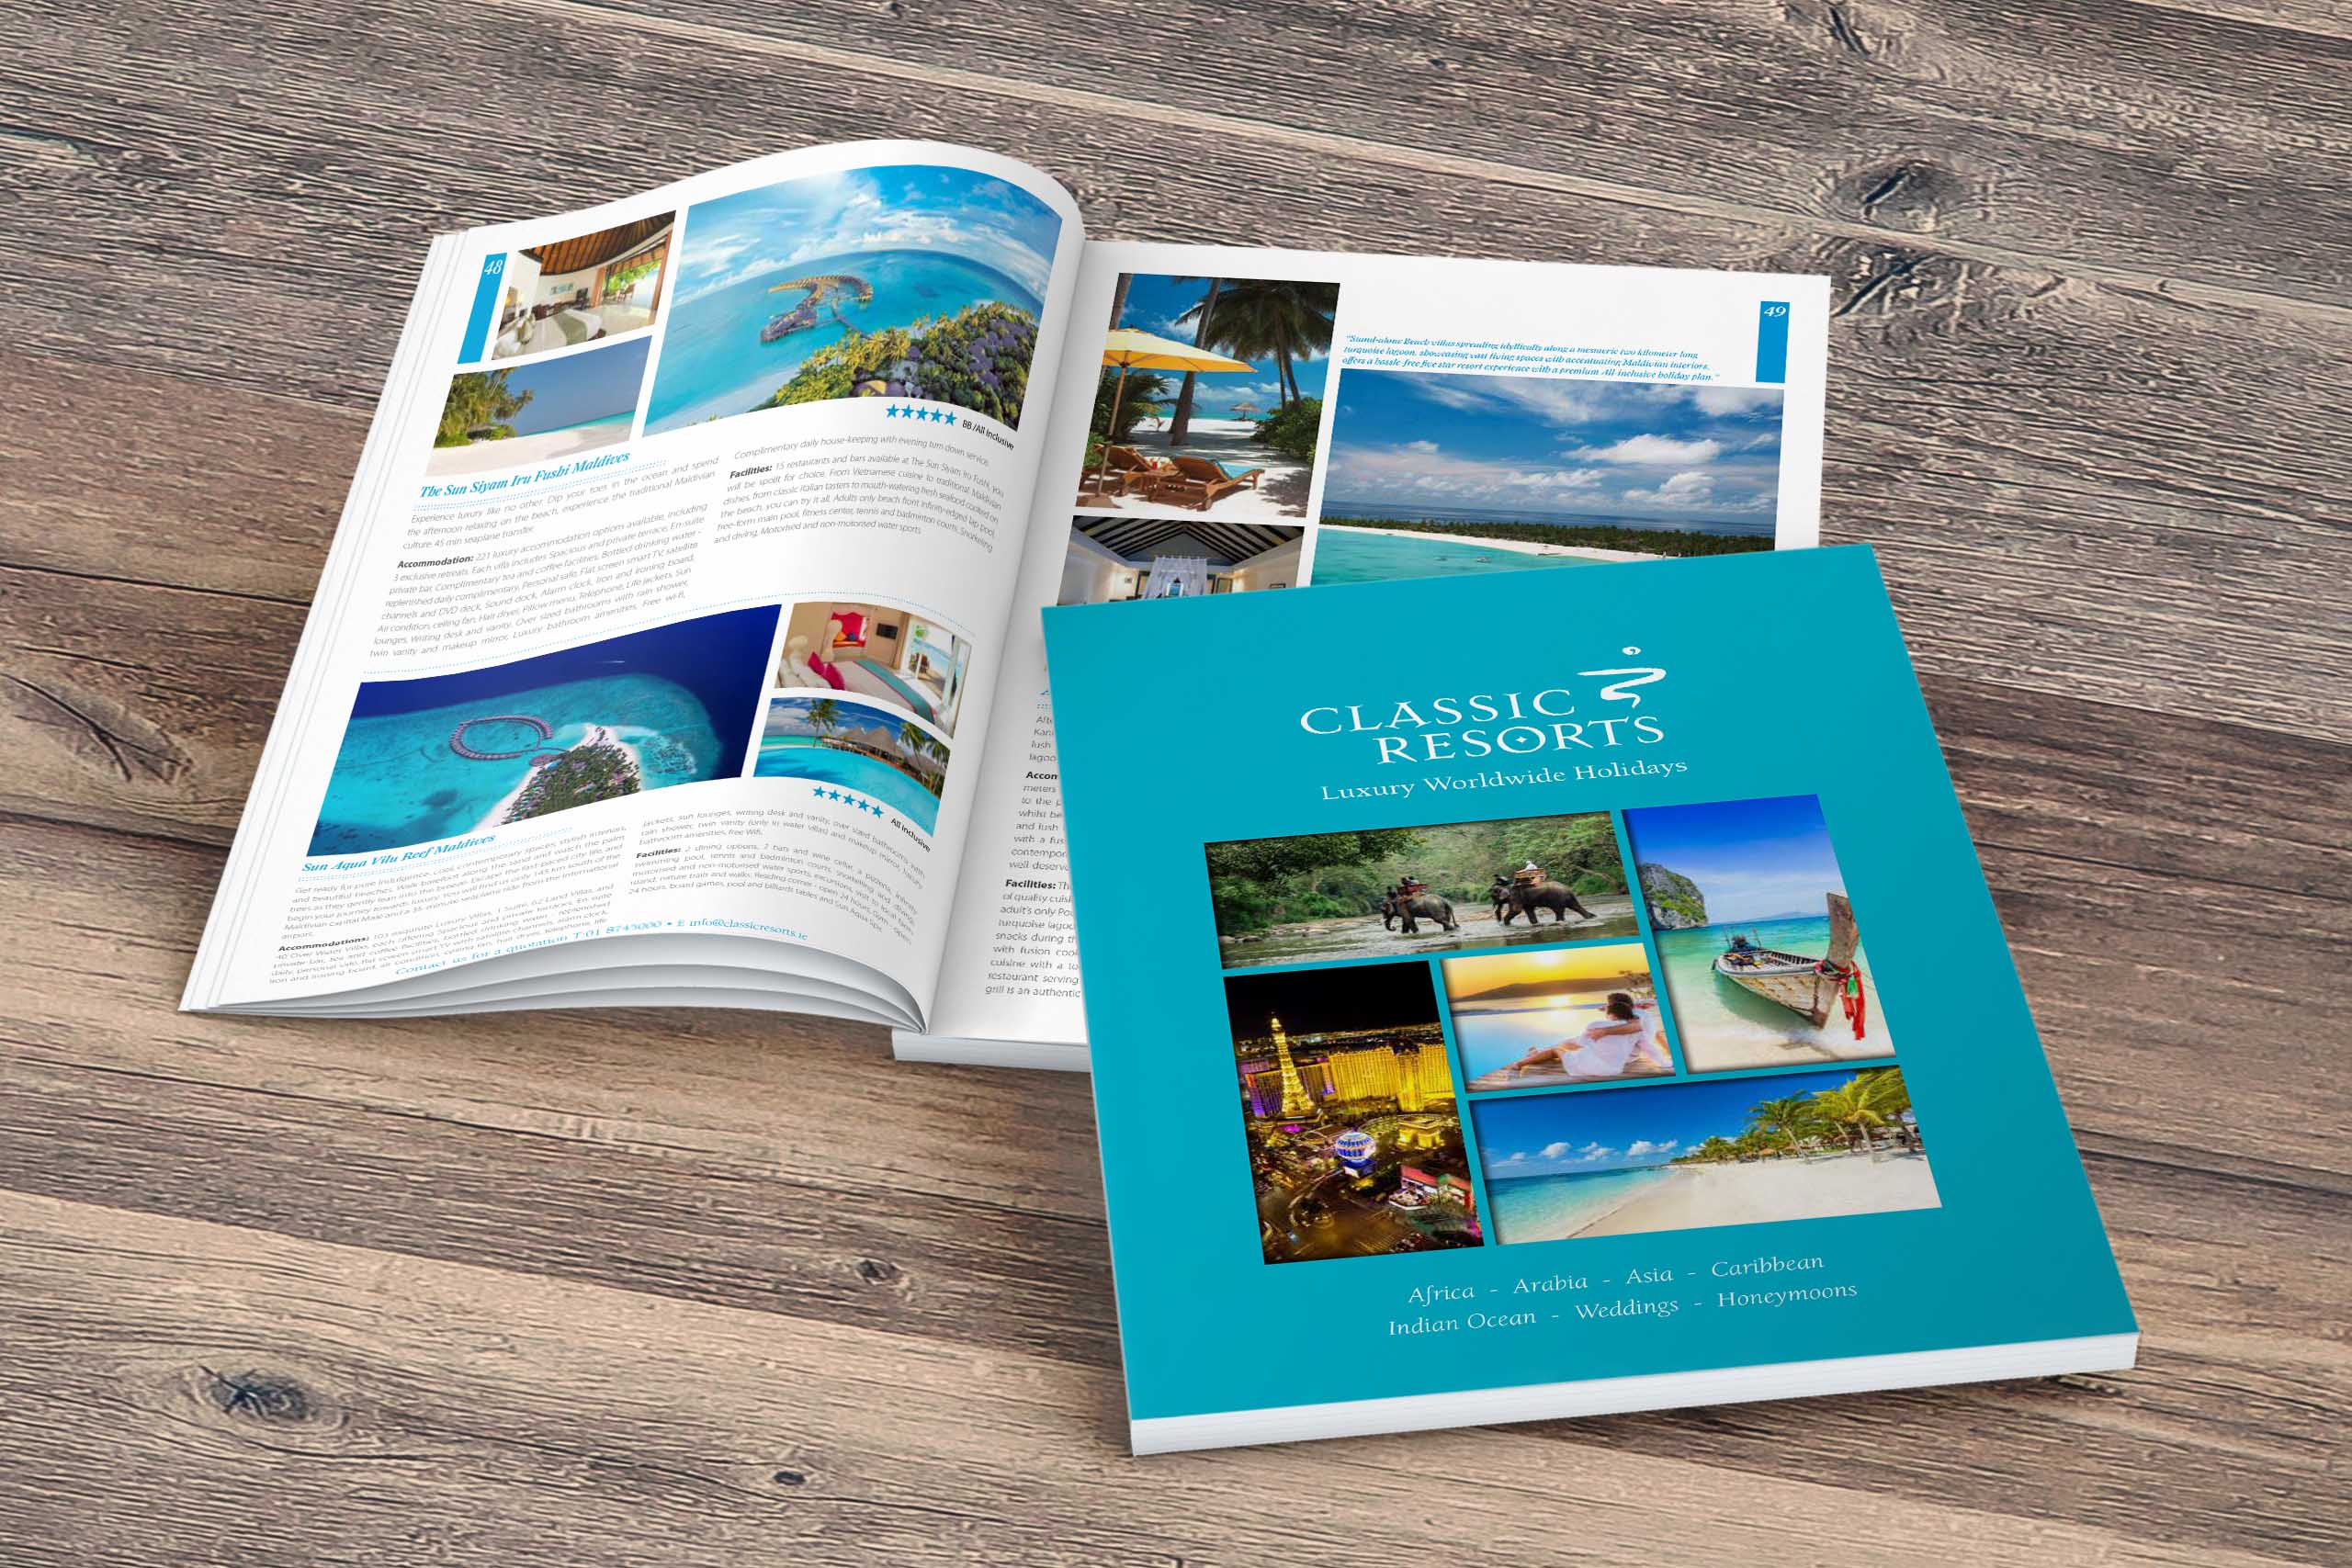 Classic Resorts 2019 Brochure